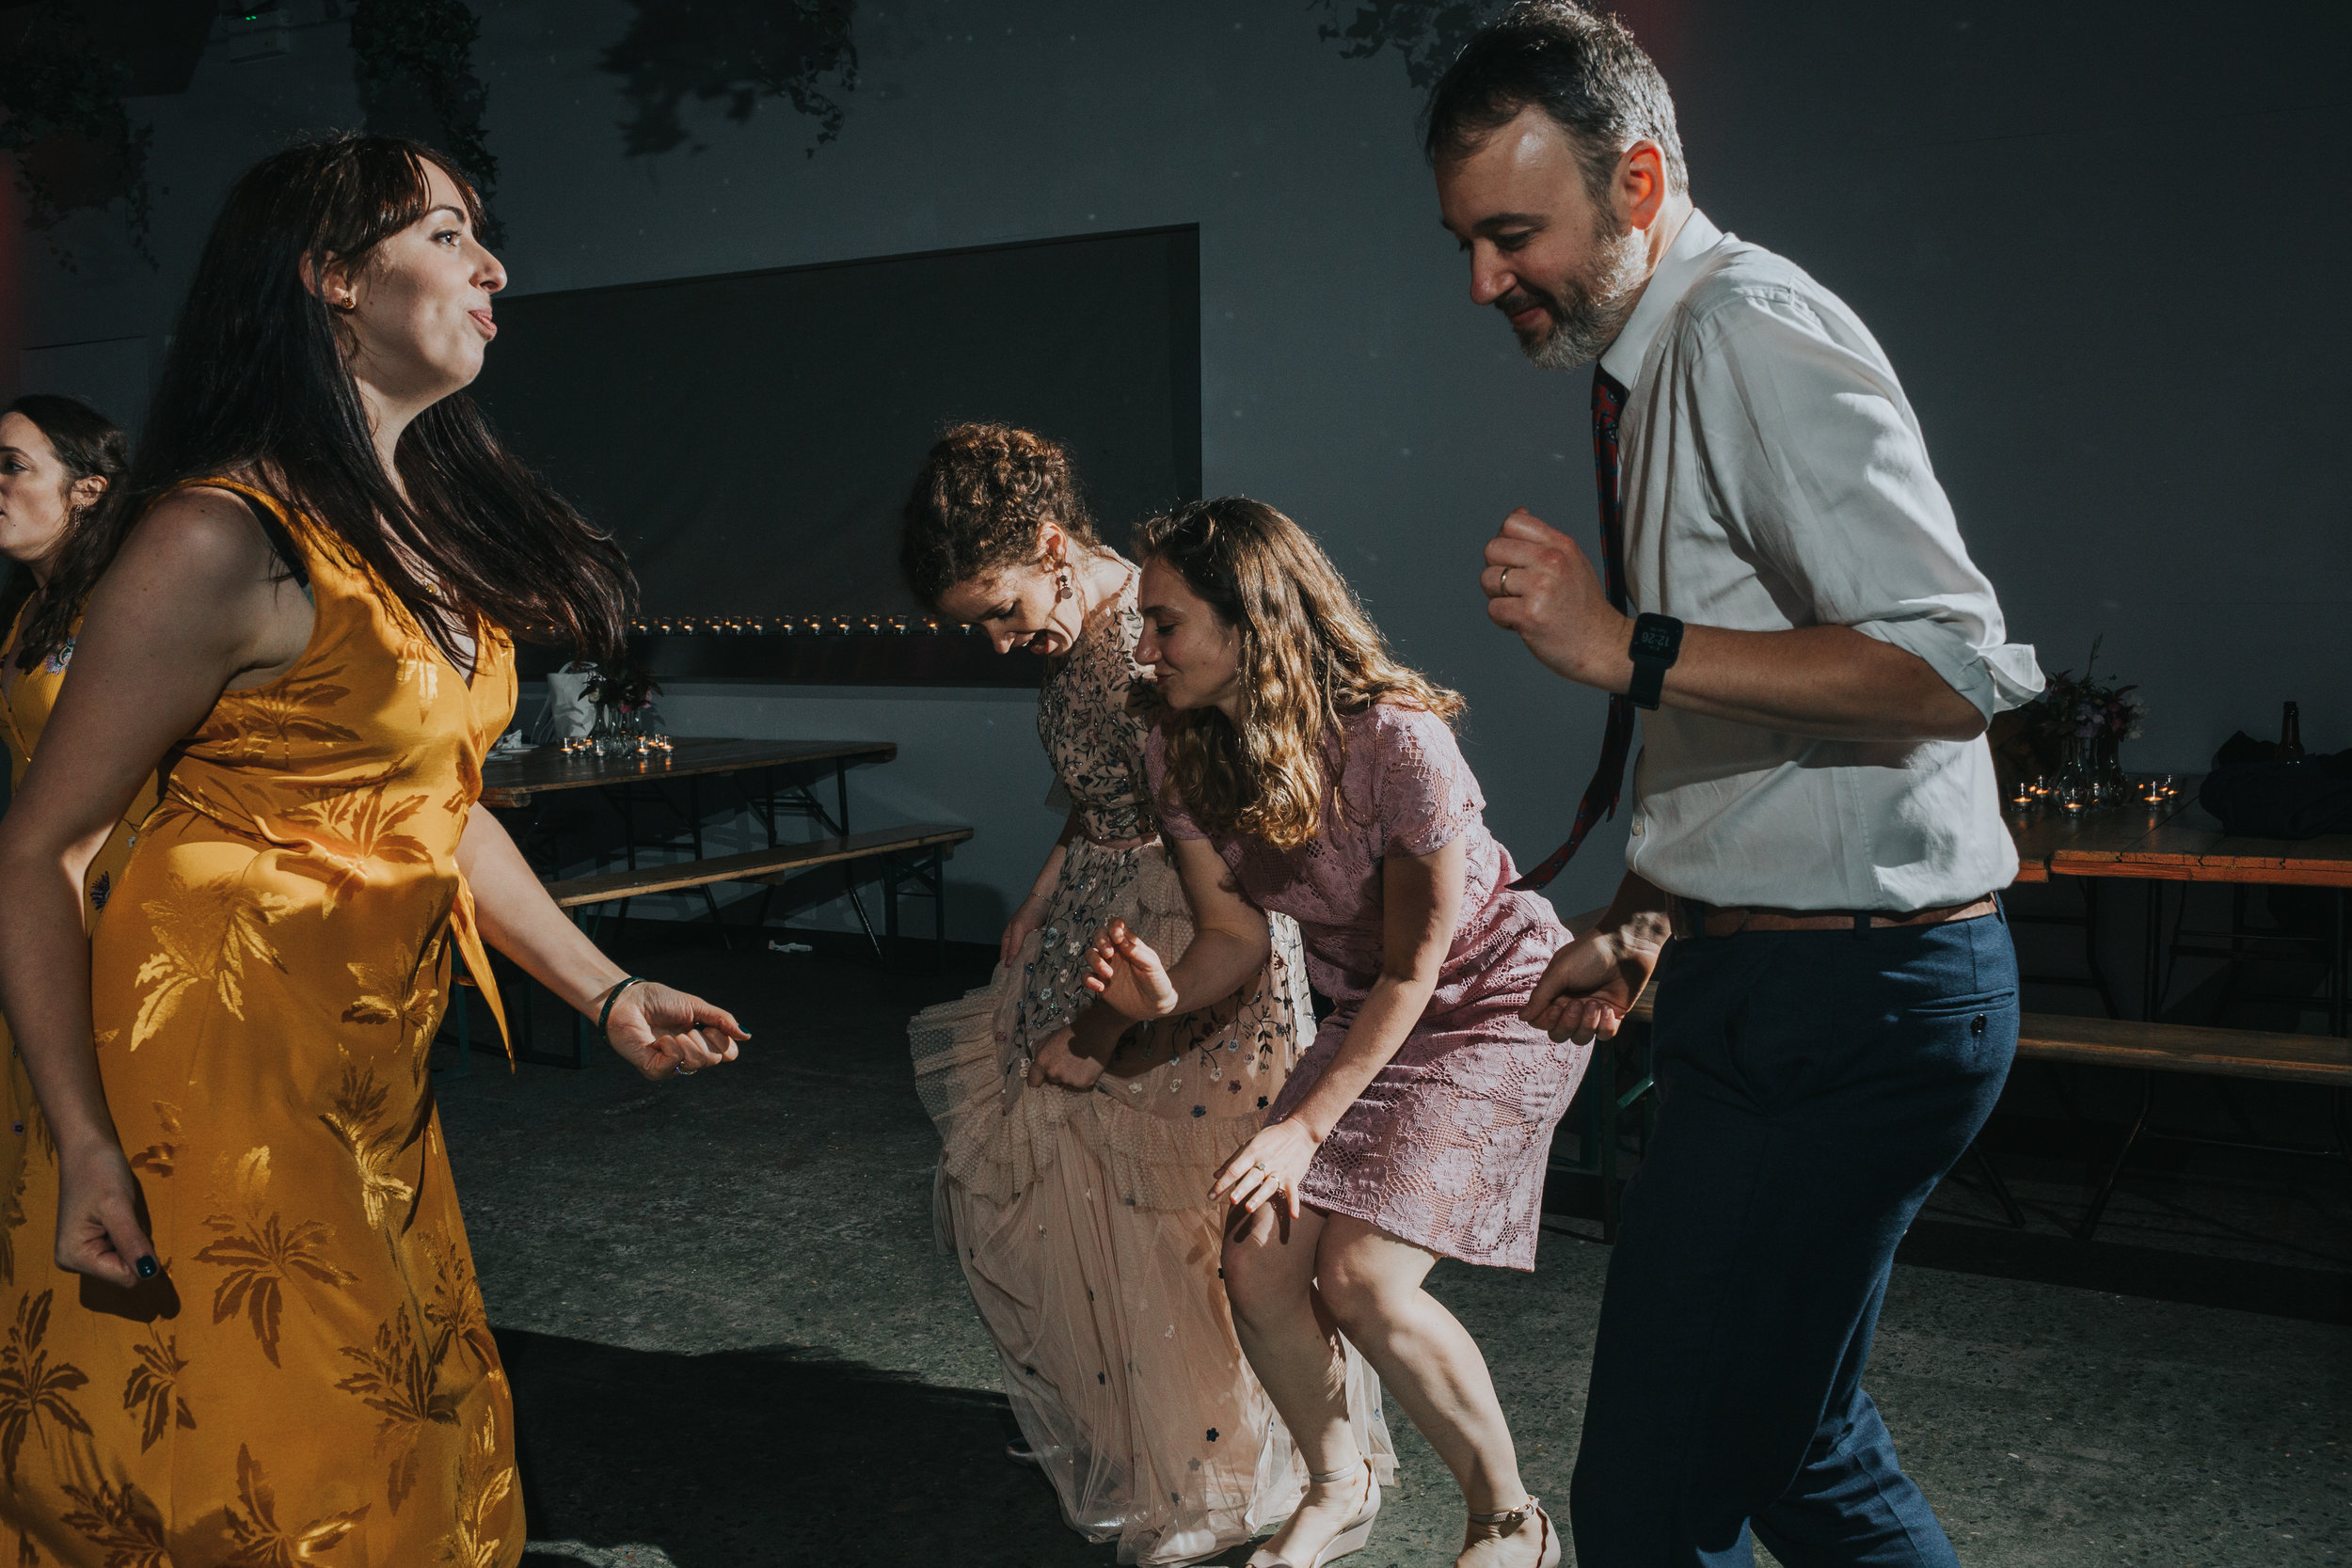 Bride throws some shapes on the dance floor with her mates.